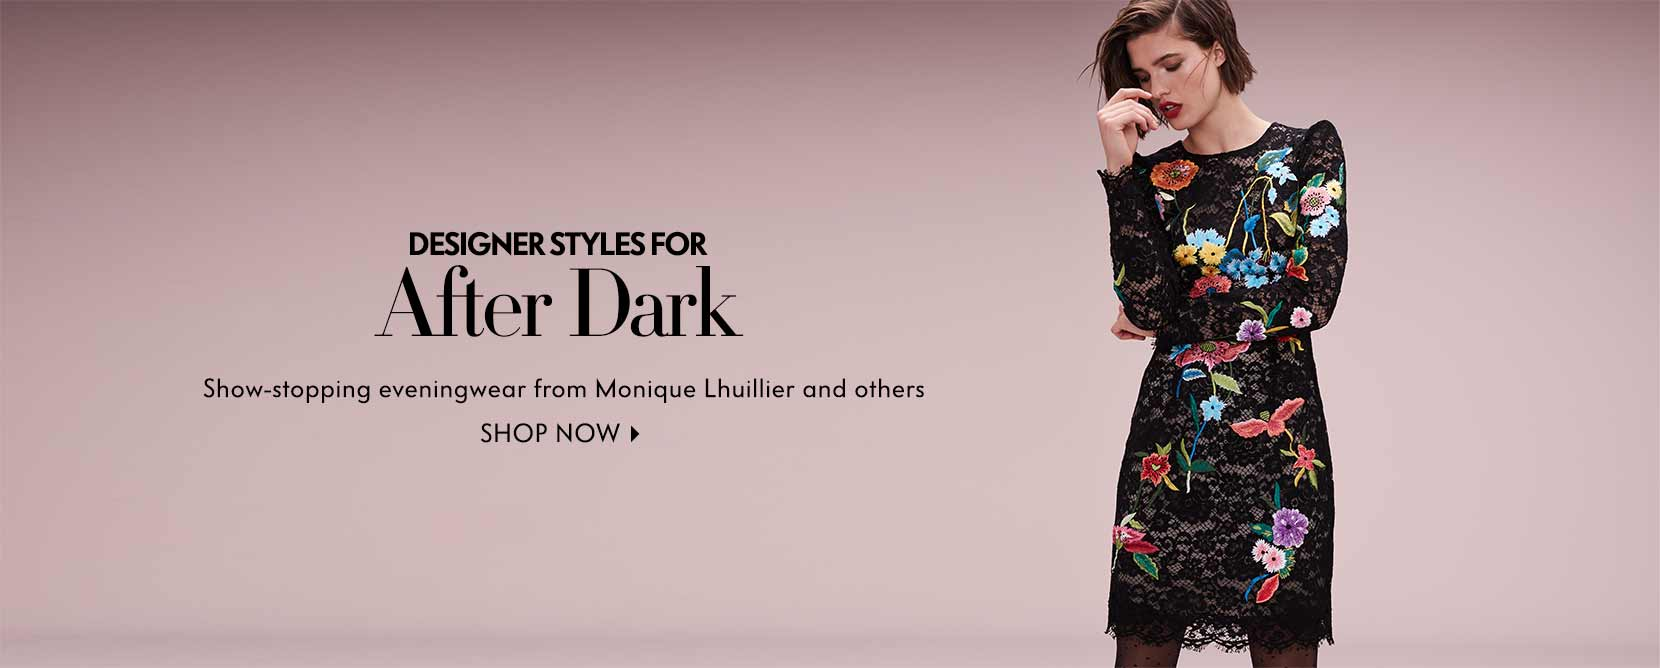 Designer styles fro after dark show-stopping evening wear from Monique Lhuillier and others